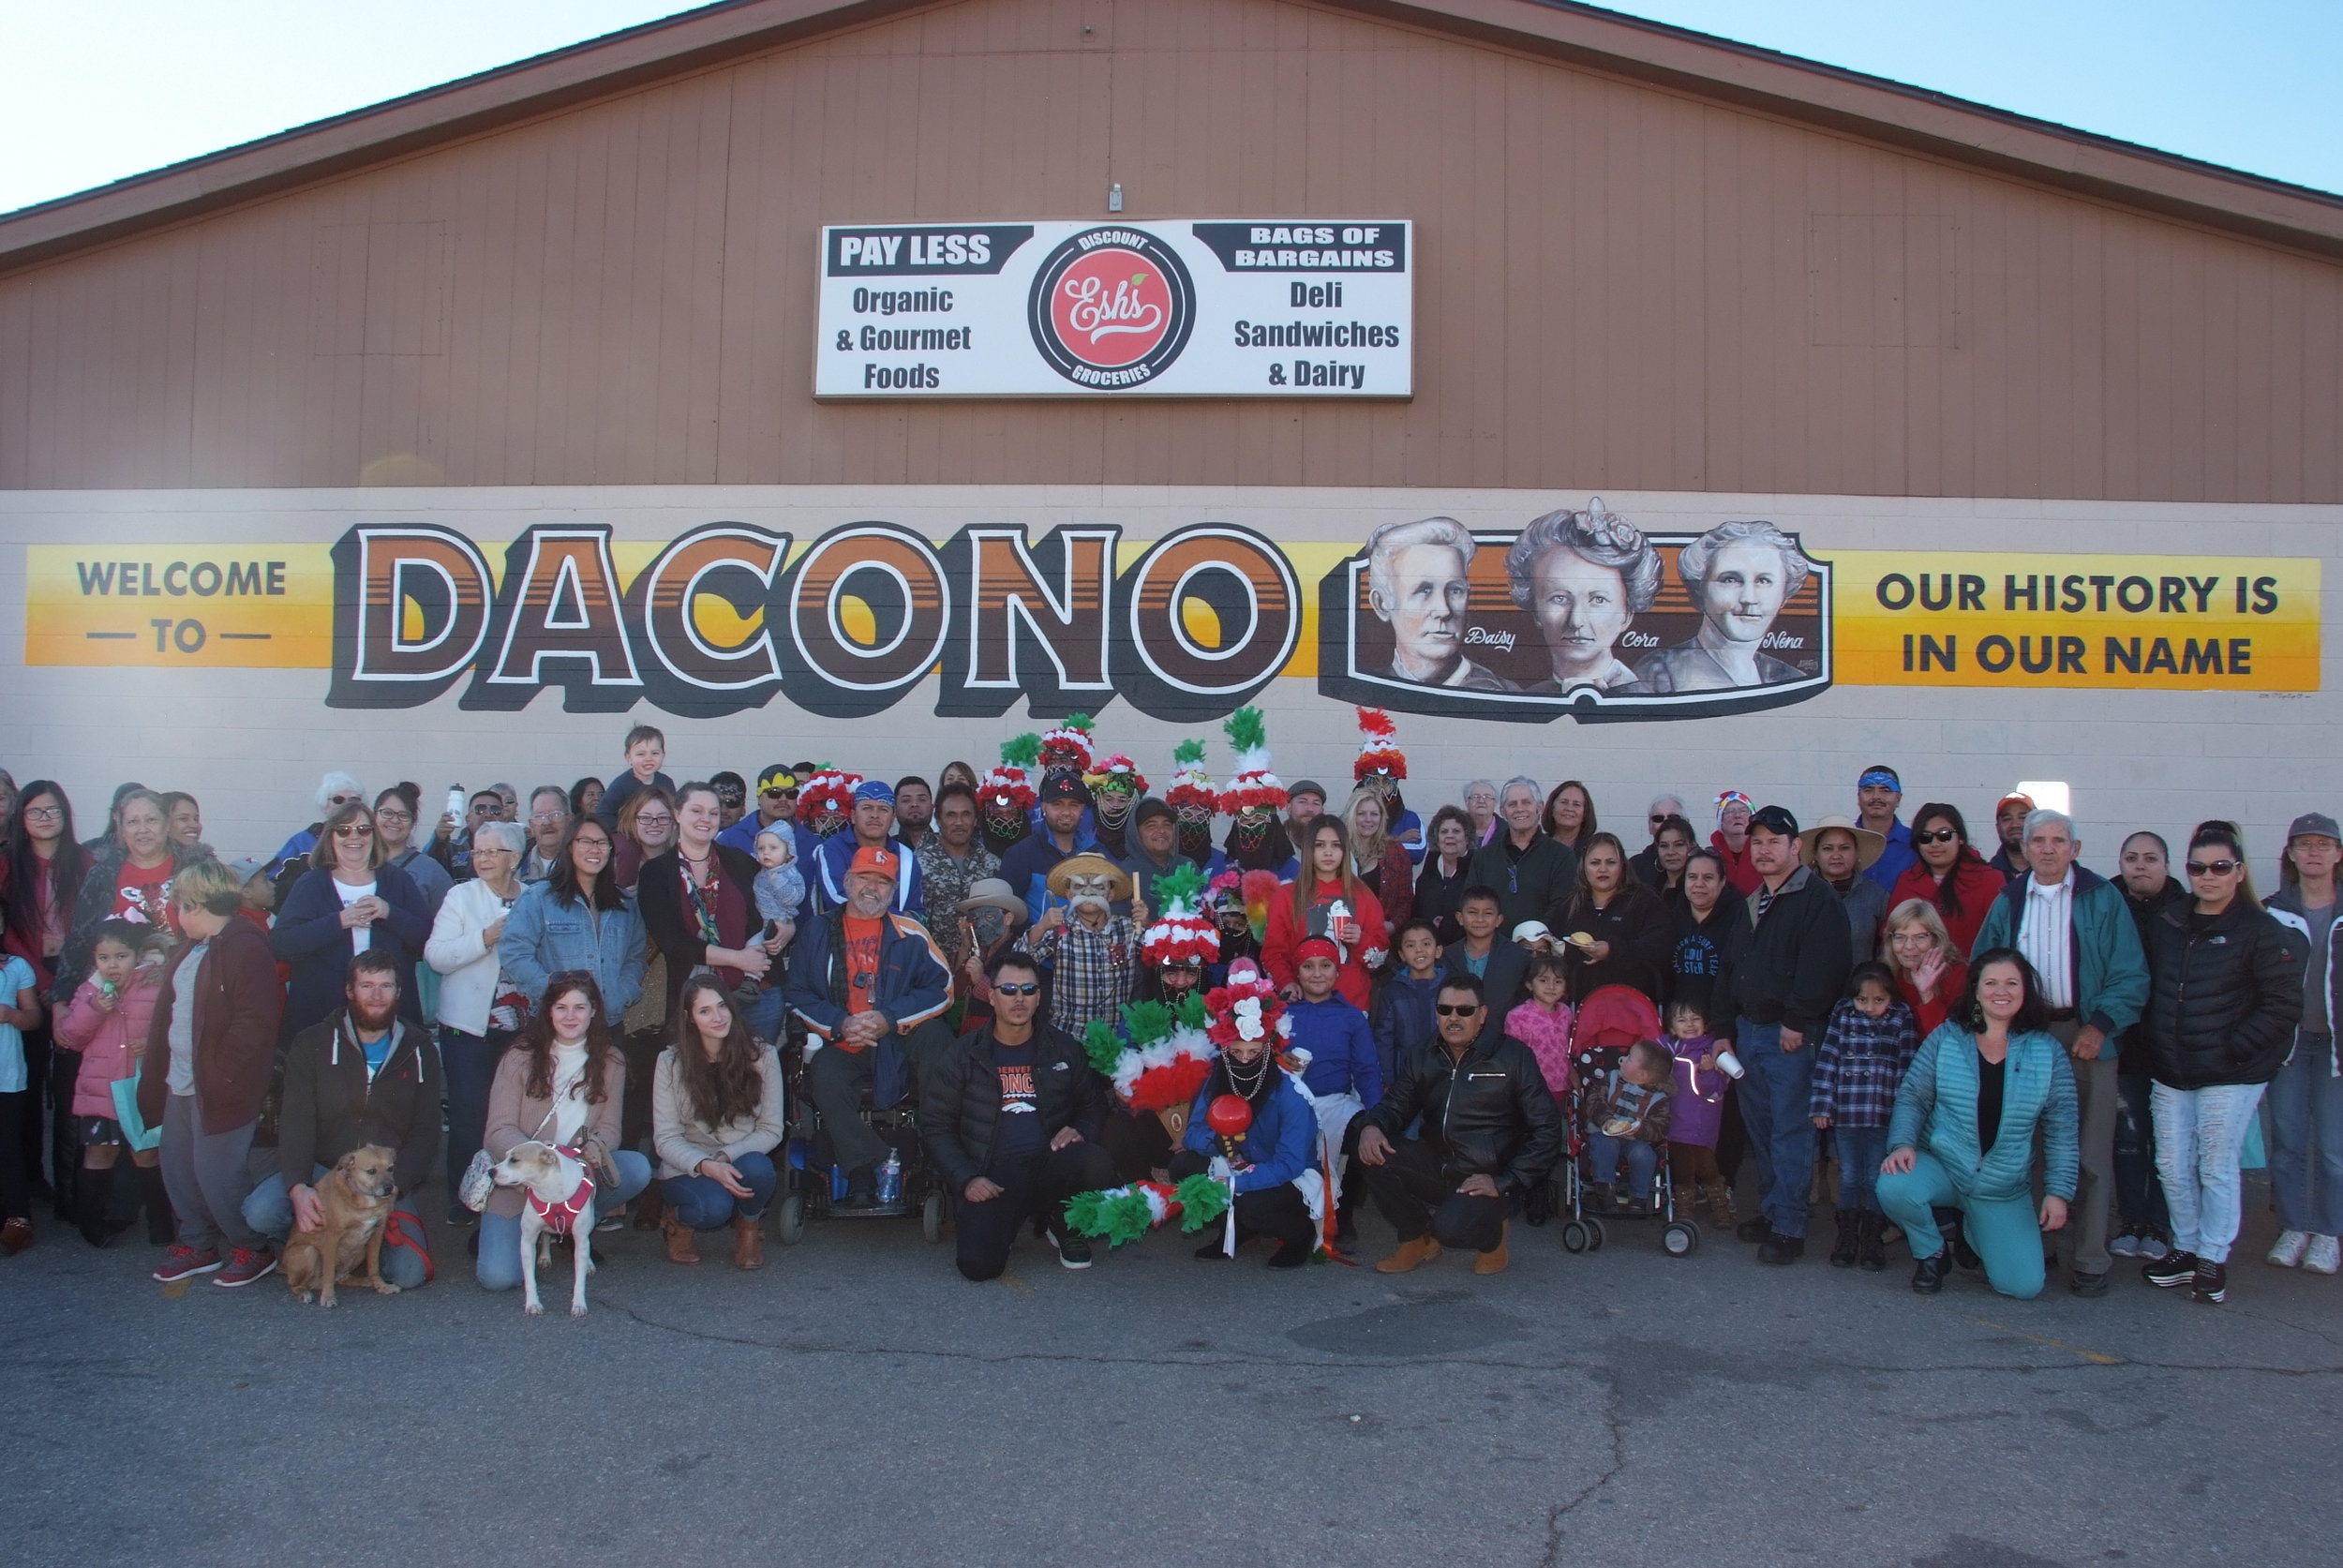 12/20/18 -  It started as an idea one year ago… On December 9th, neighbors gathered to dedicate the new Mural at Esh's with a Posada/ Celebration!   Local artist, Bart McCune designed and installed the mural this fall to honor the history of Dacono. The mural was one of 4 community projects identified by the Pride of The Glens Coalition and funded by Wells Fargo to build community this year. Nearly 70 folks attended to celebrate with hot cocoa, traditional champurrado, sweet breads and traditional Mexican dancers, los matachines!  Learn more about Neighborhood Revitalization .   What does 'community' mean to you?